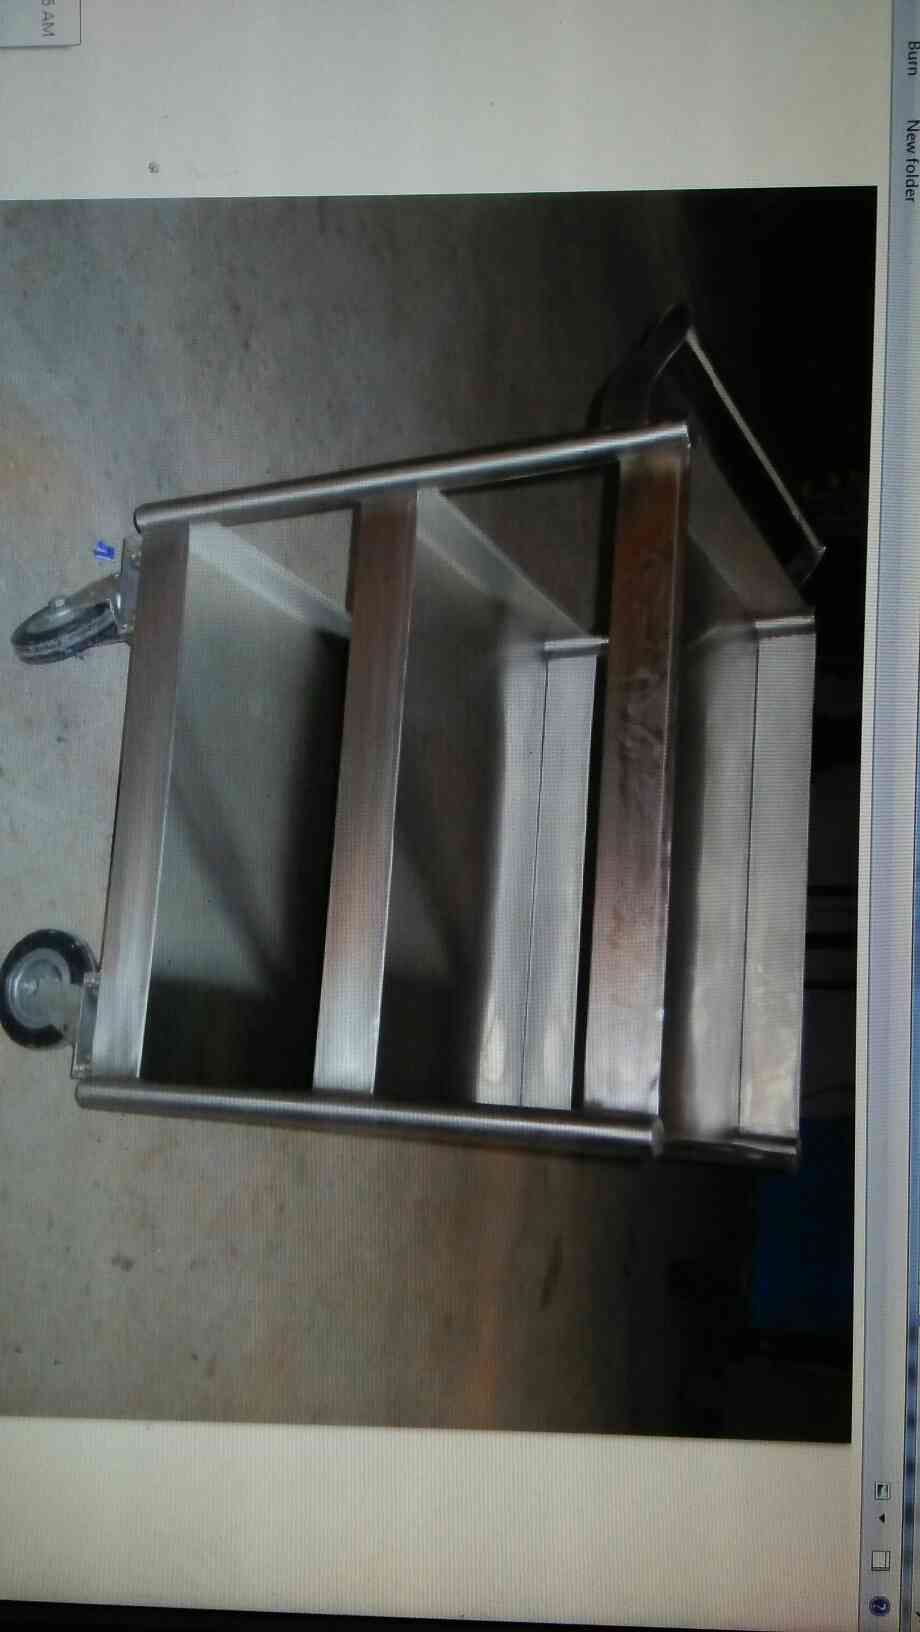 3 stair SS Food service trolley is made up of 16SWG SS 304 grade  Sheet. It have 4 wheels out of them 2 are break Wheels 2 are normal wheels.  It have one handle made up of 1 inch SS pipe